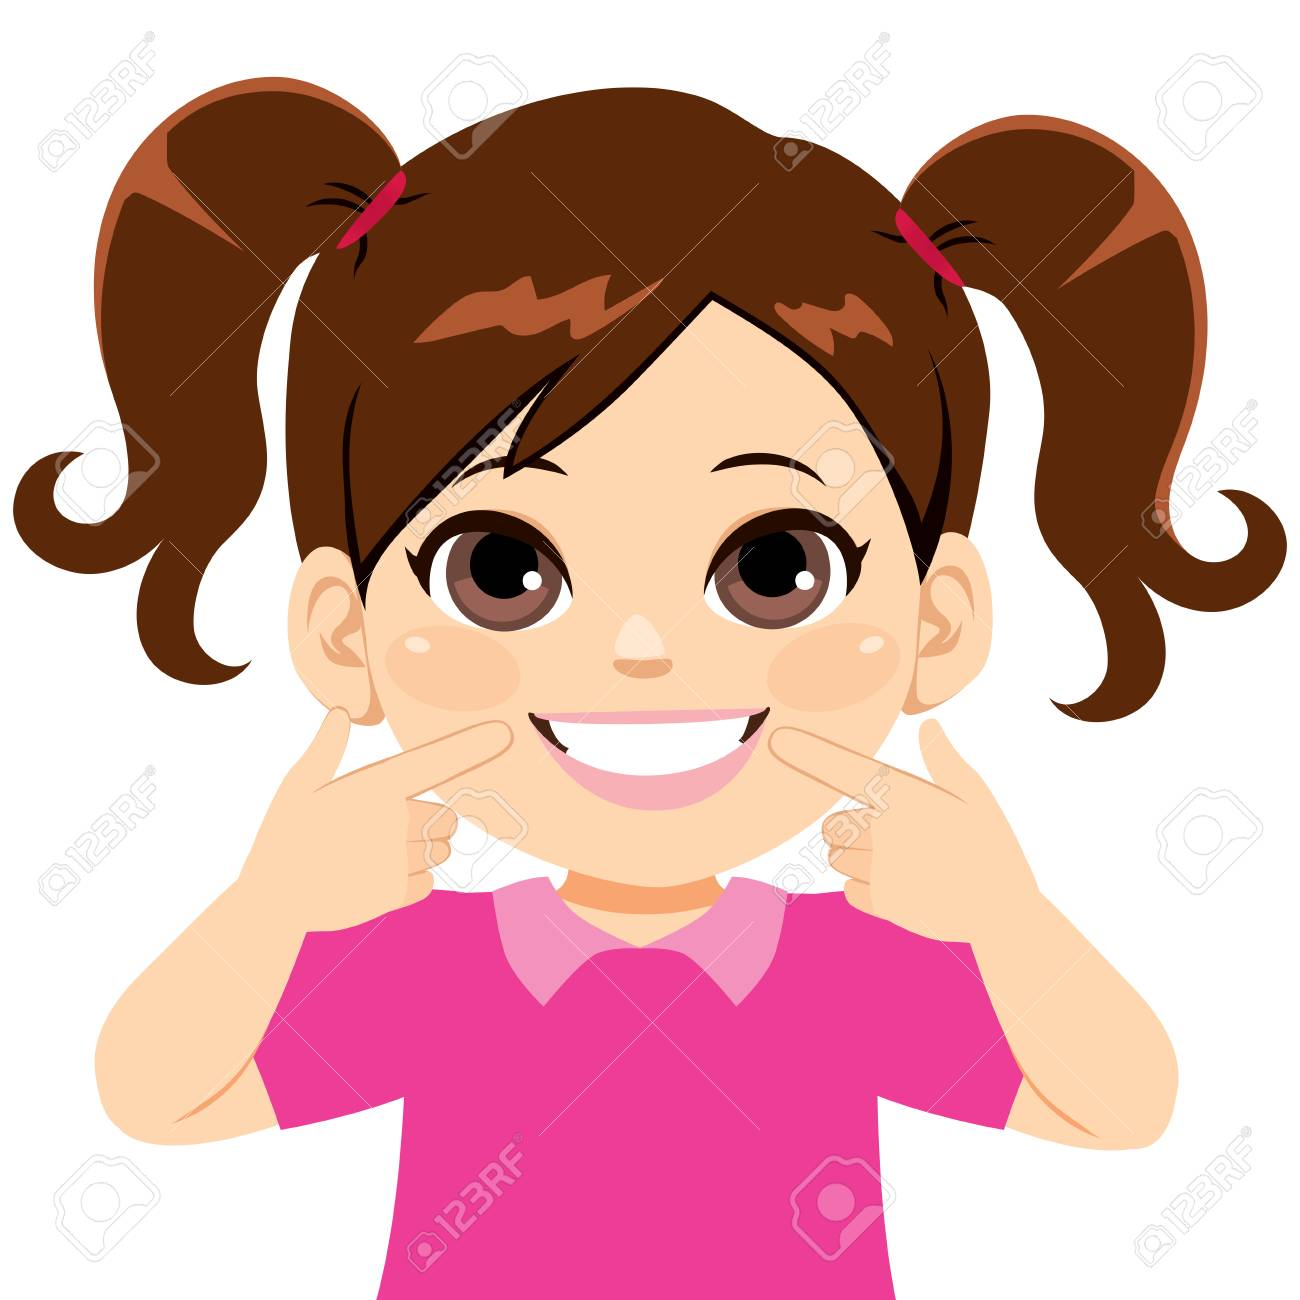 Young happy sweet little girl smiling showing her white smile pointing fingers at teeth - 113294847